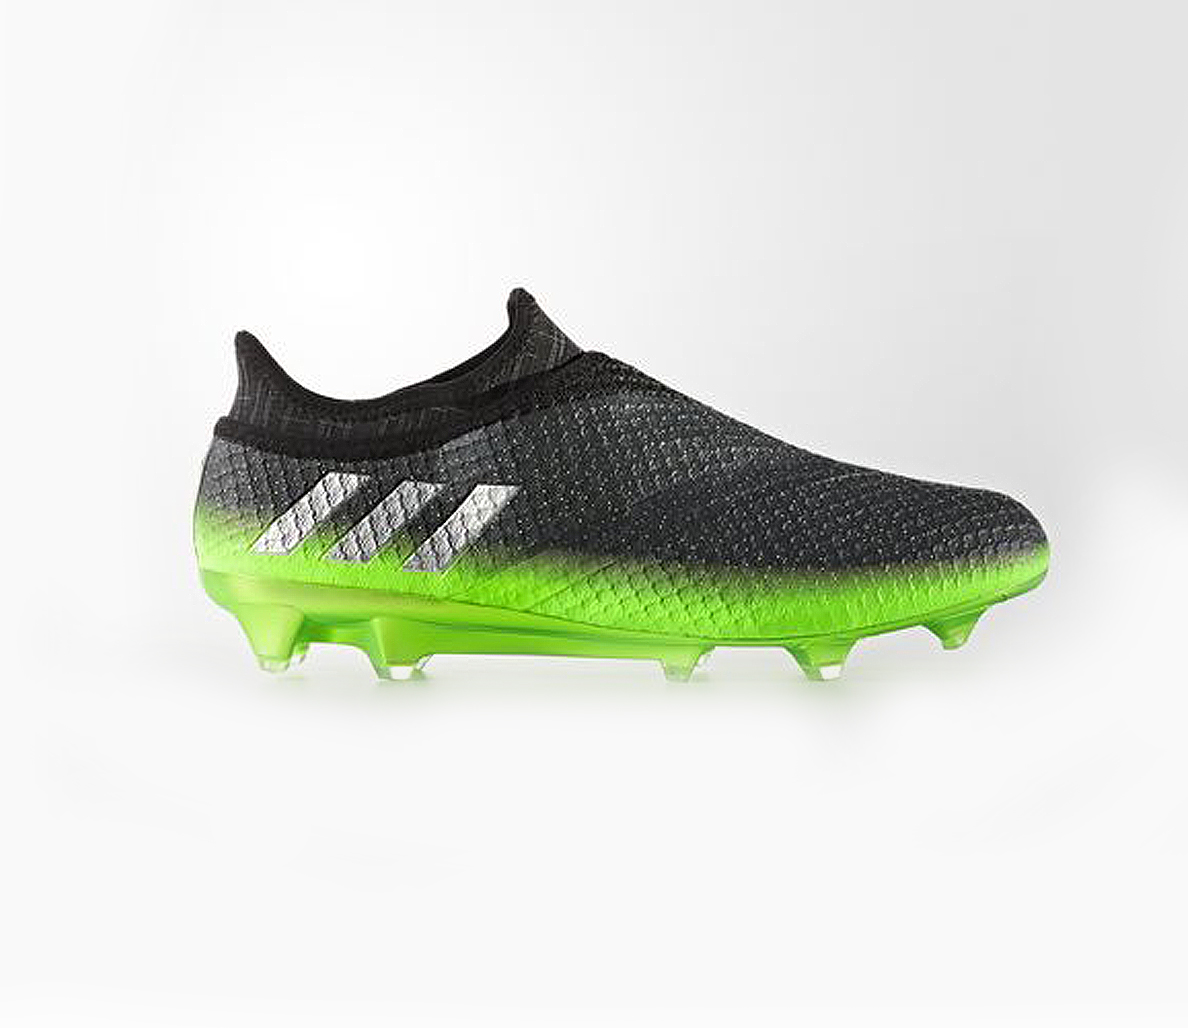 best website b5f12 965fe Messi Pureagility Firm Ground Cleats, Adidas